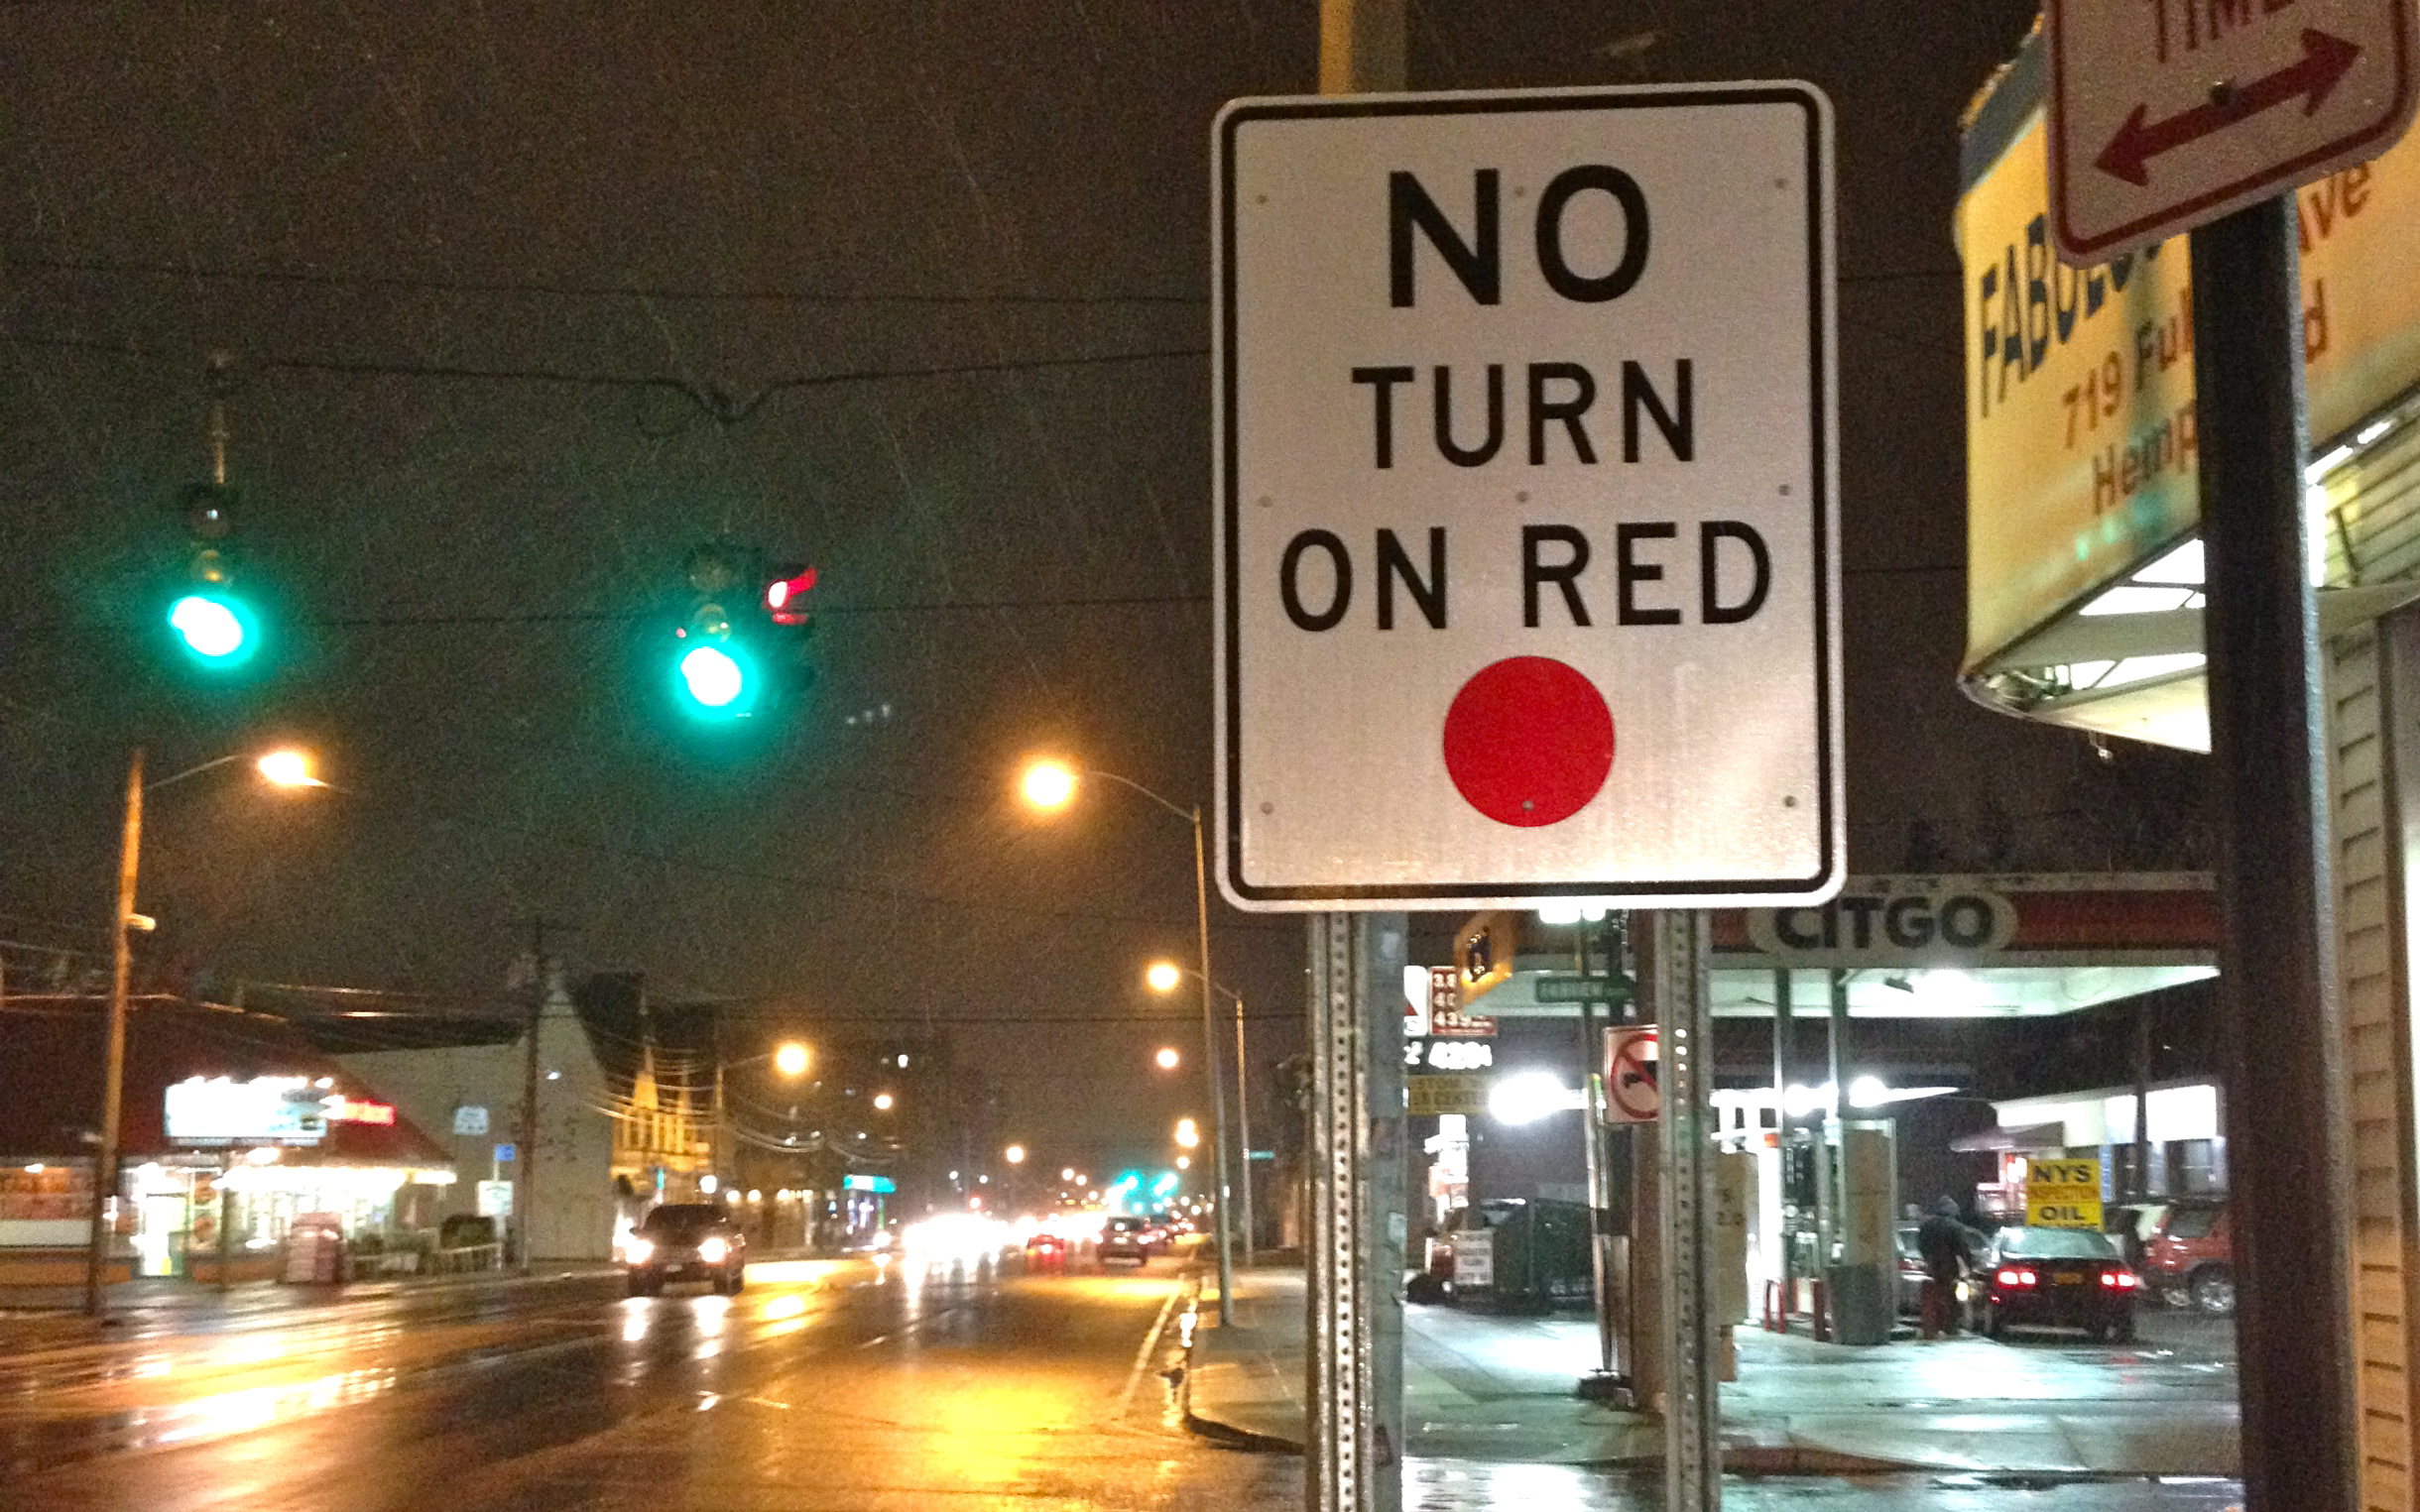 no turn on red - ibid